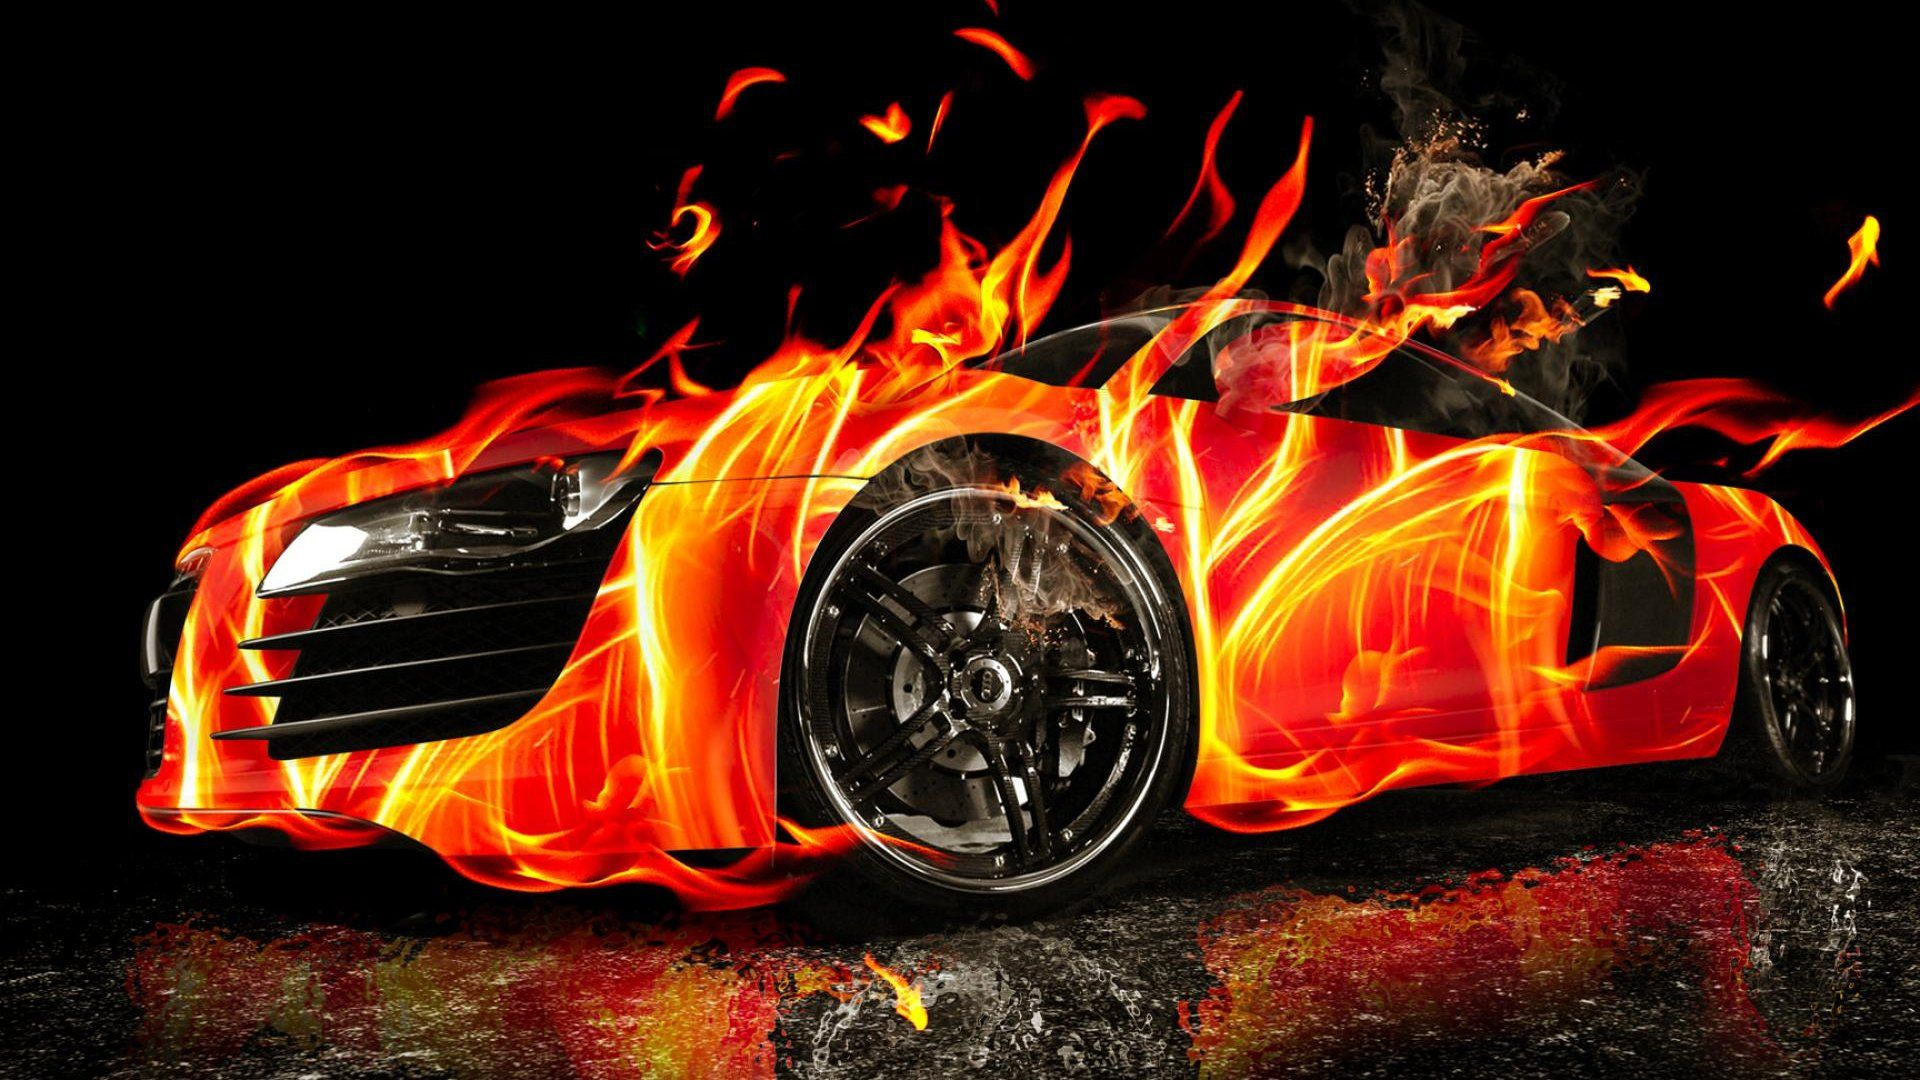 Hot Wheels Car Wallpaper 1920 1080 High Definition Wallpaper